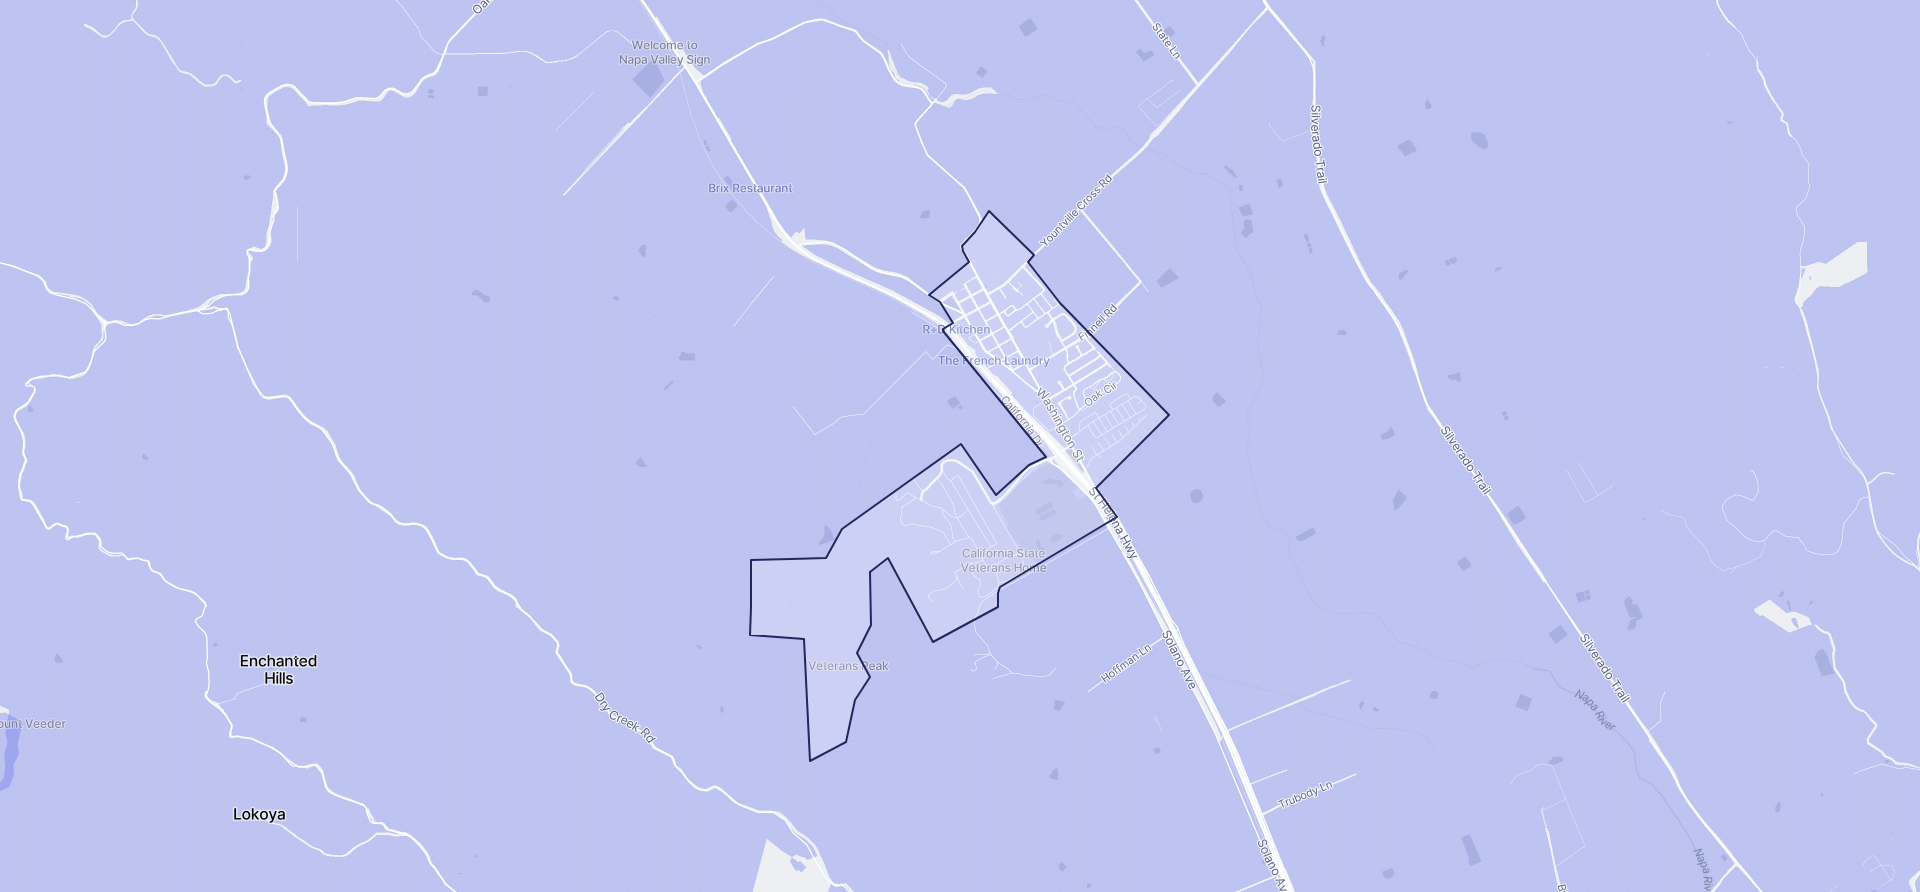 Image of Yountville boundaries on a map.